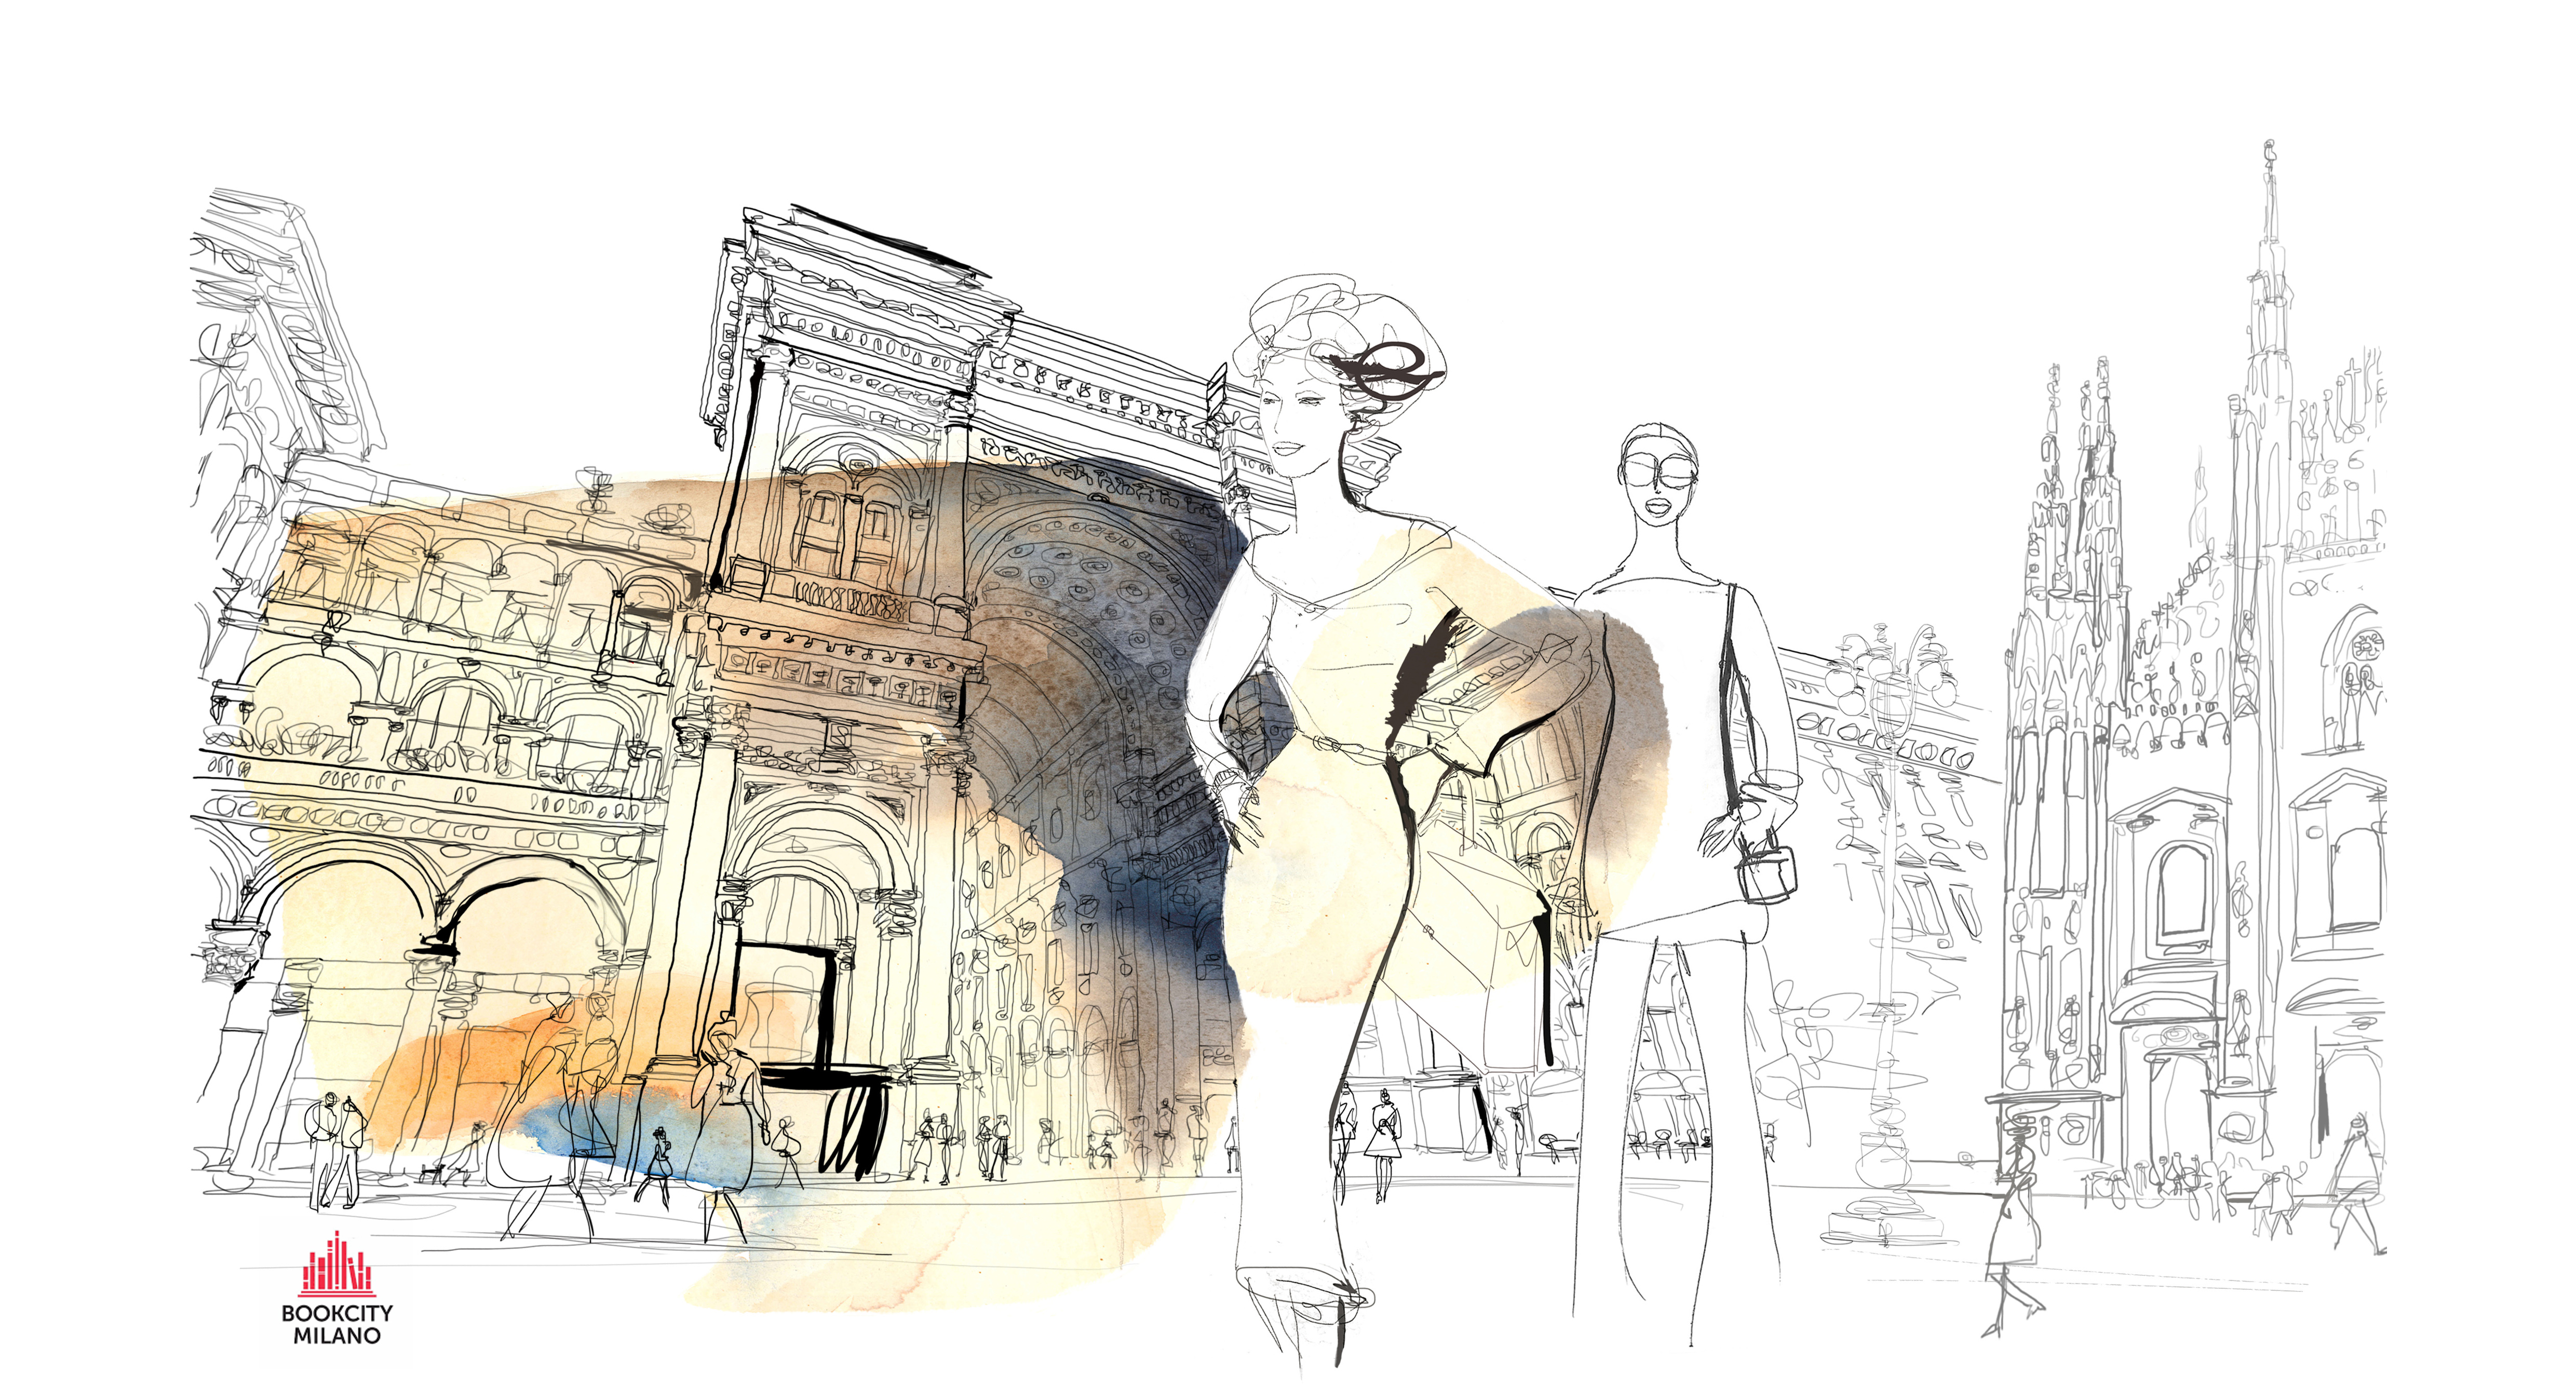 Watercolor illustration, Bookcity, fashion in Milan